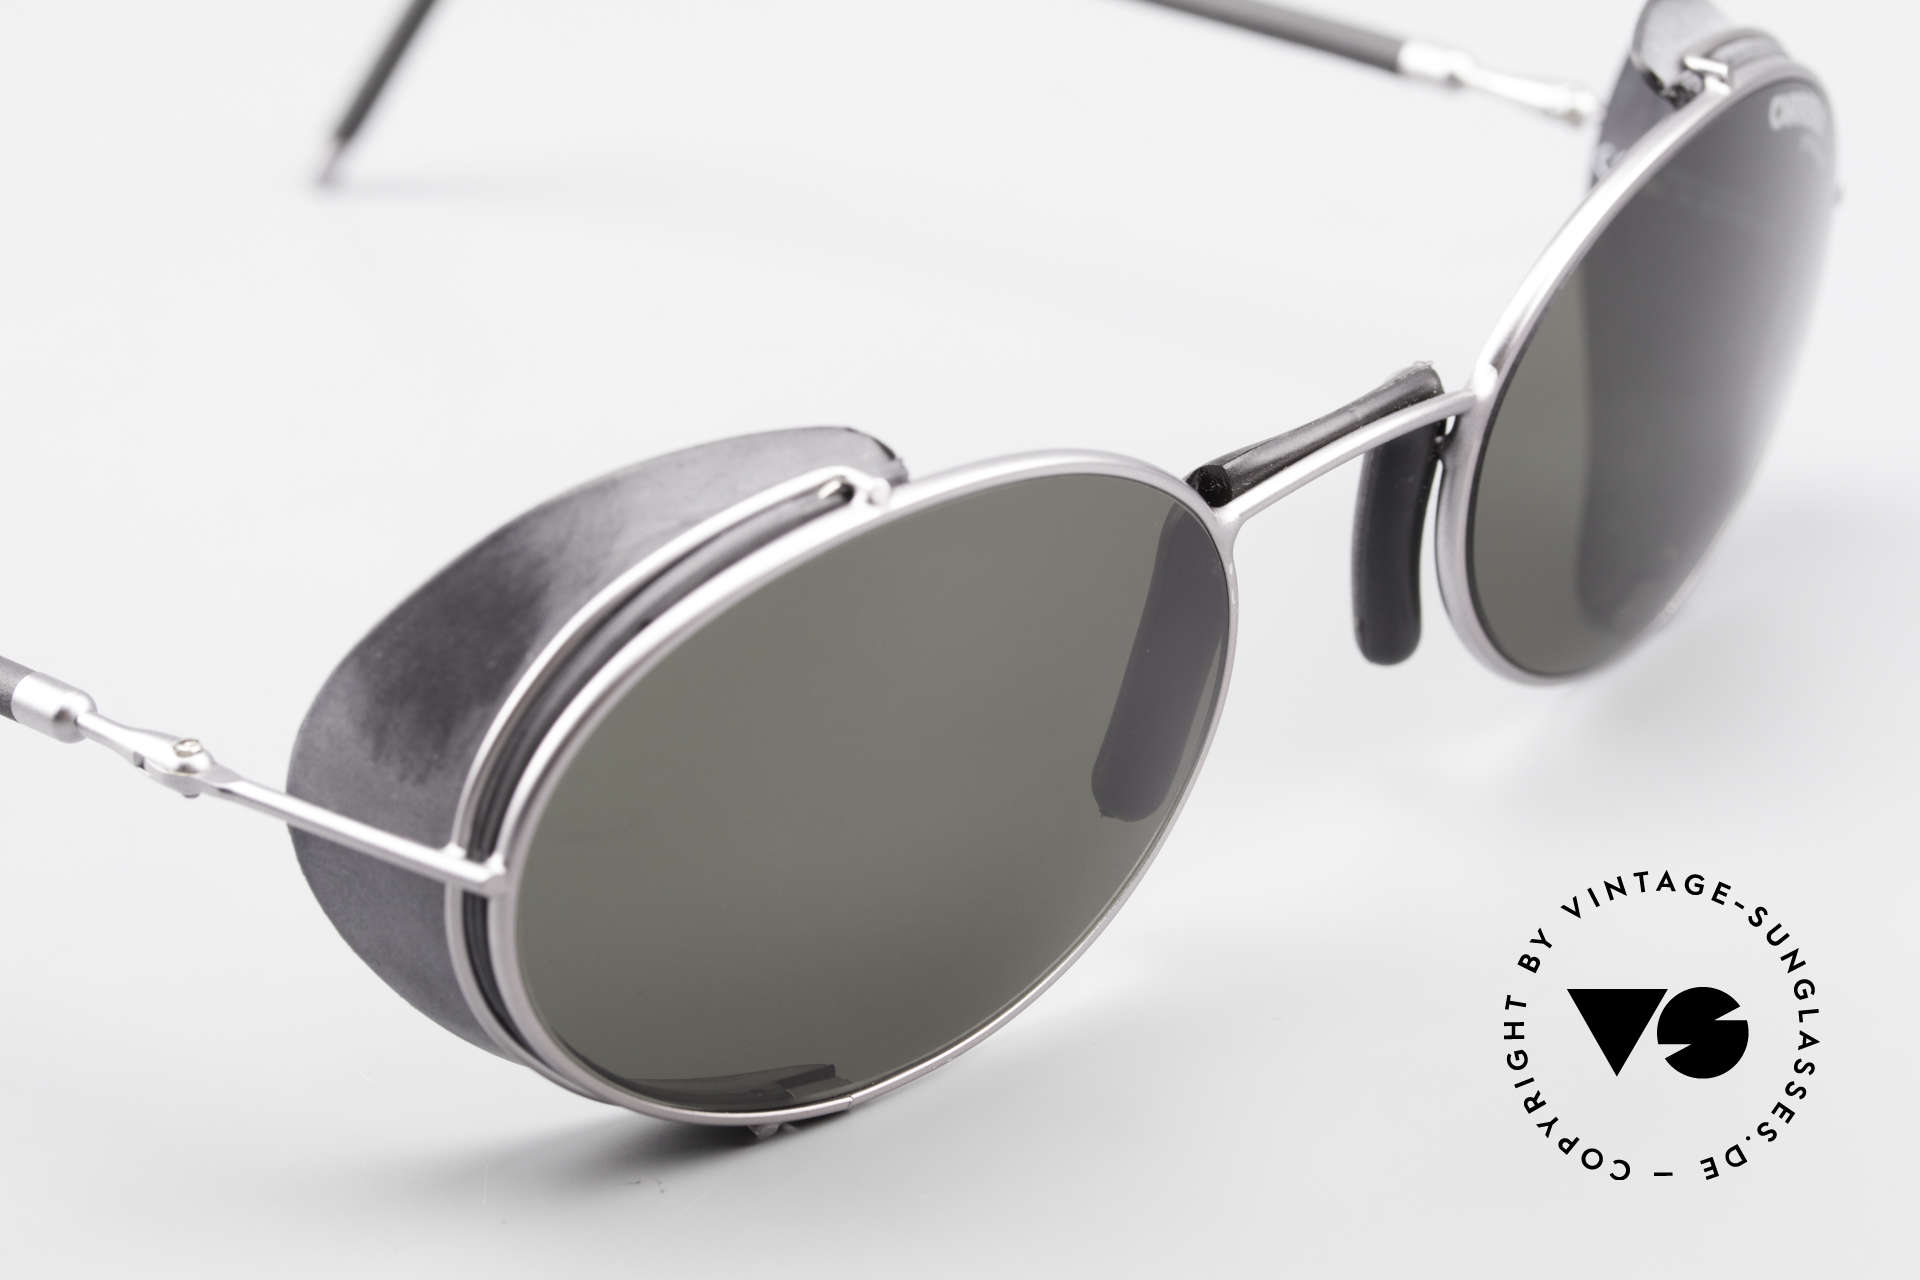 Carrera 5580 90's Sportsglasses Steampunk, removable side shields (120mm width = a SMALL size!), Made for Men and Women